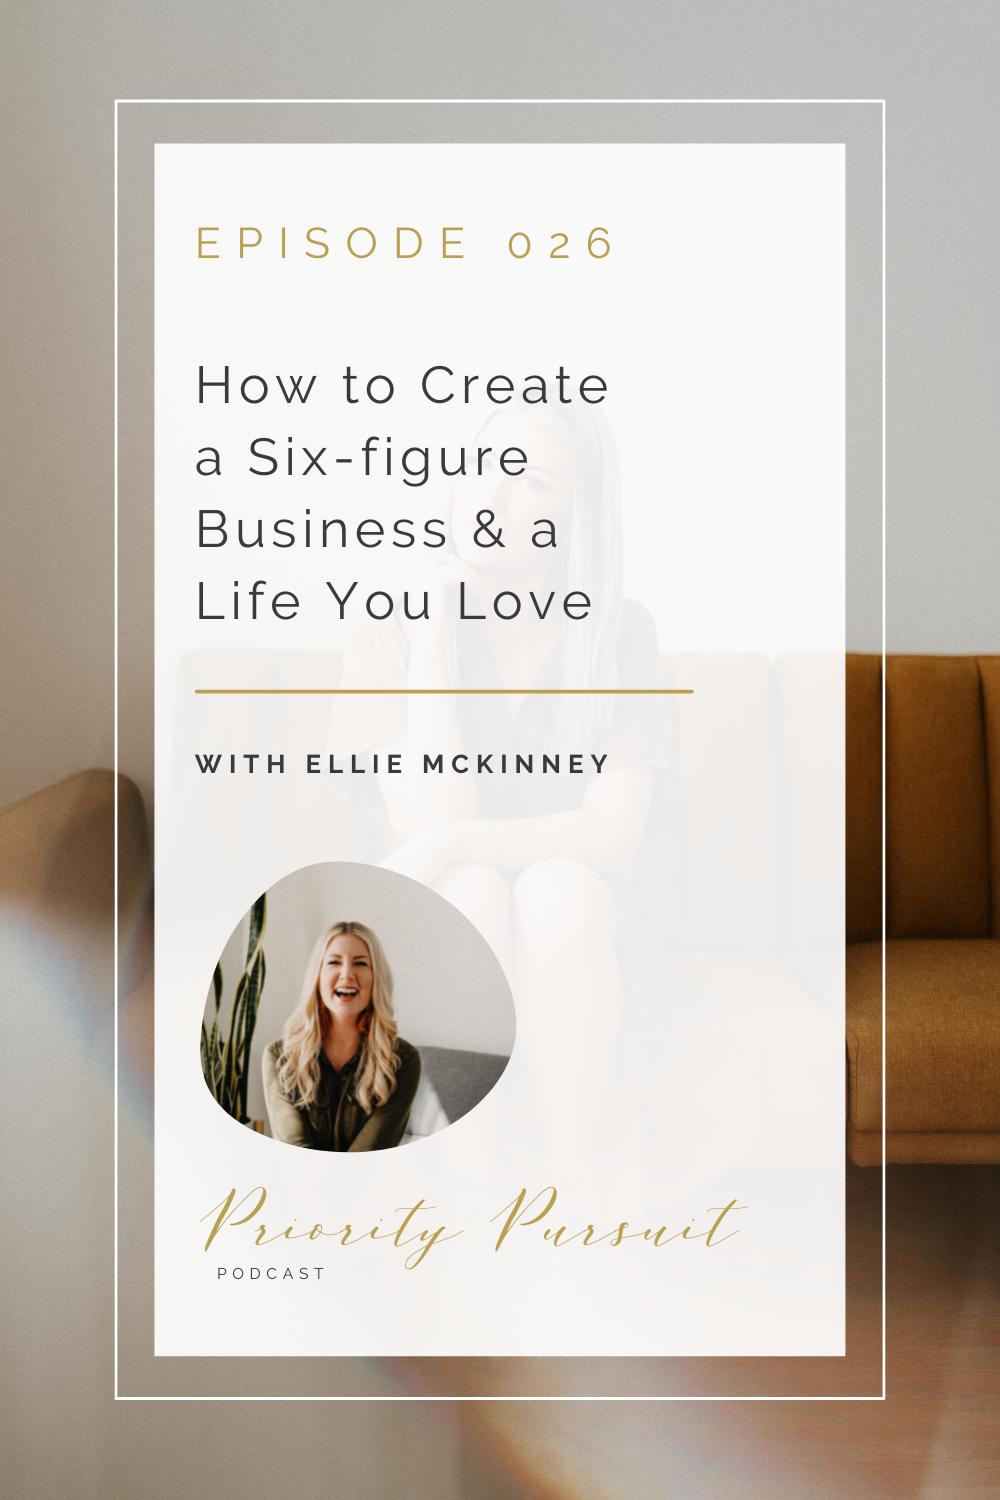 Victoria Rayburn and Ellie McKinney discuss how to create a six-figure business and a life you love.